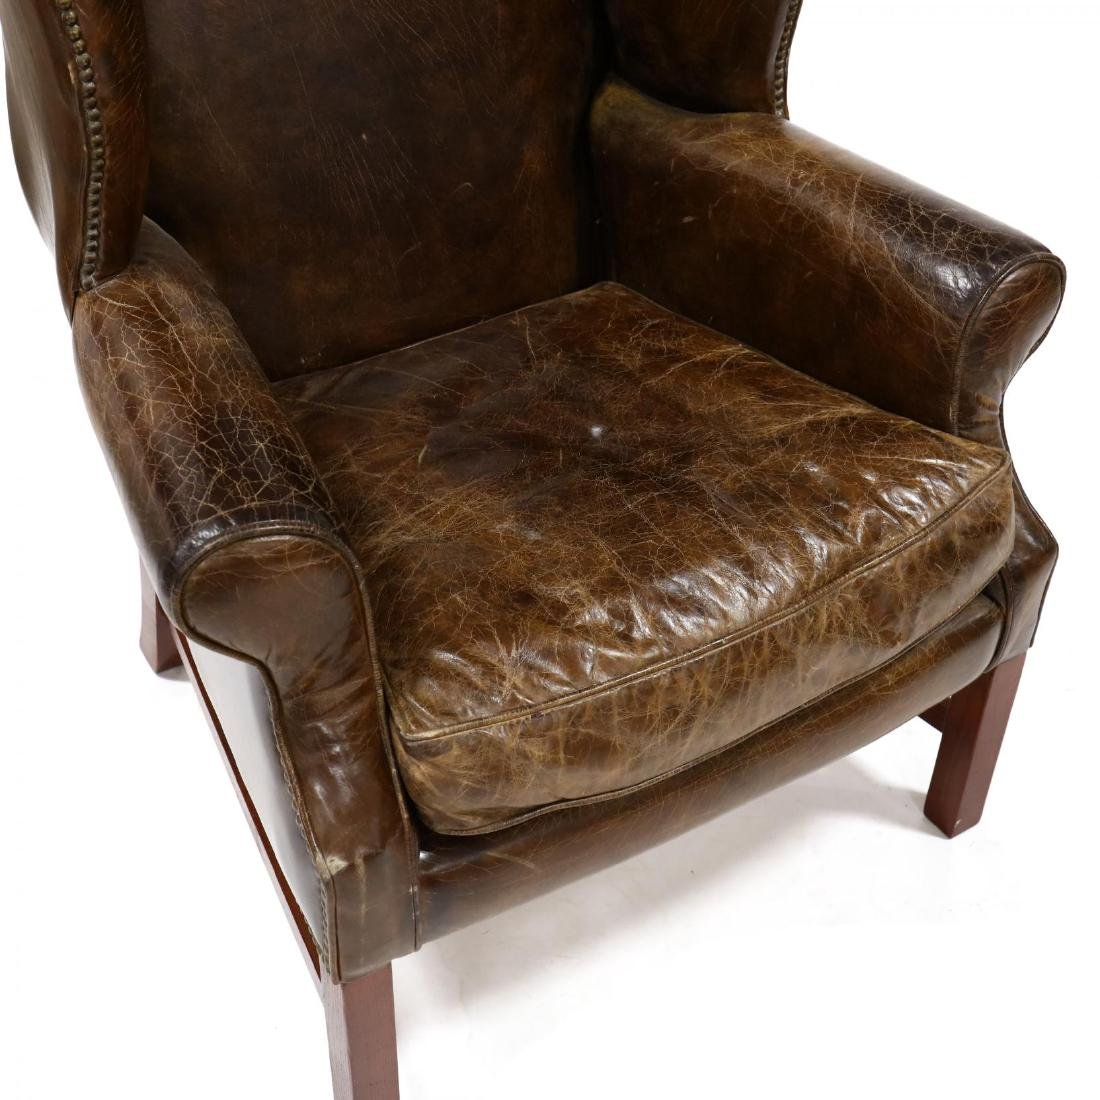 Chippendale Style Distressed Leather Wing Back Chair - 2